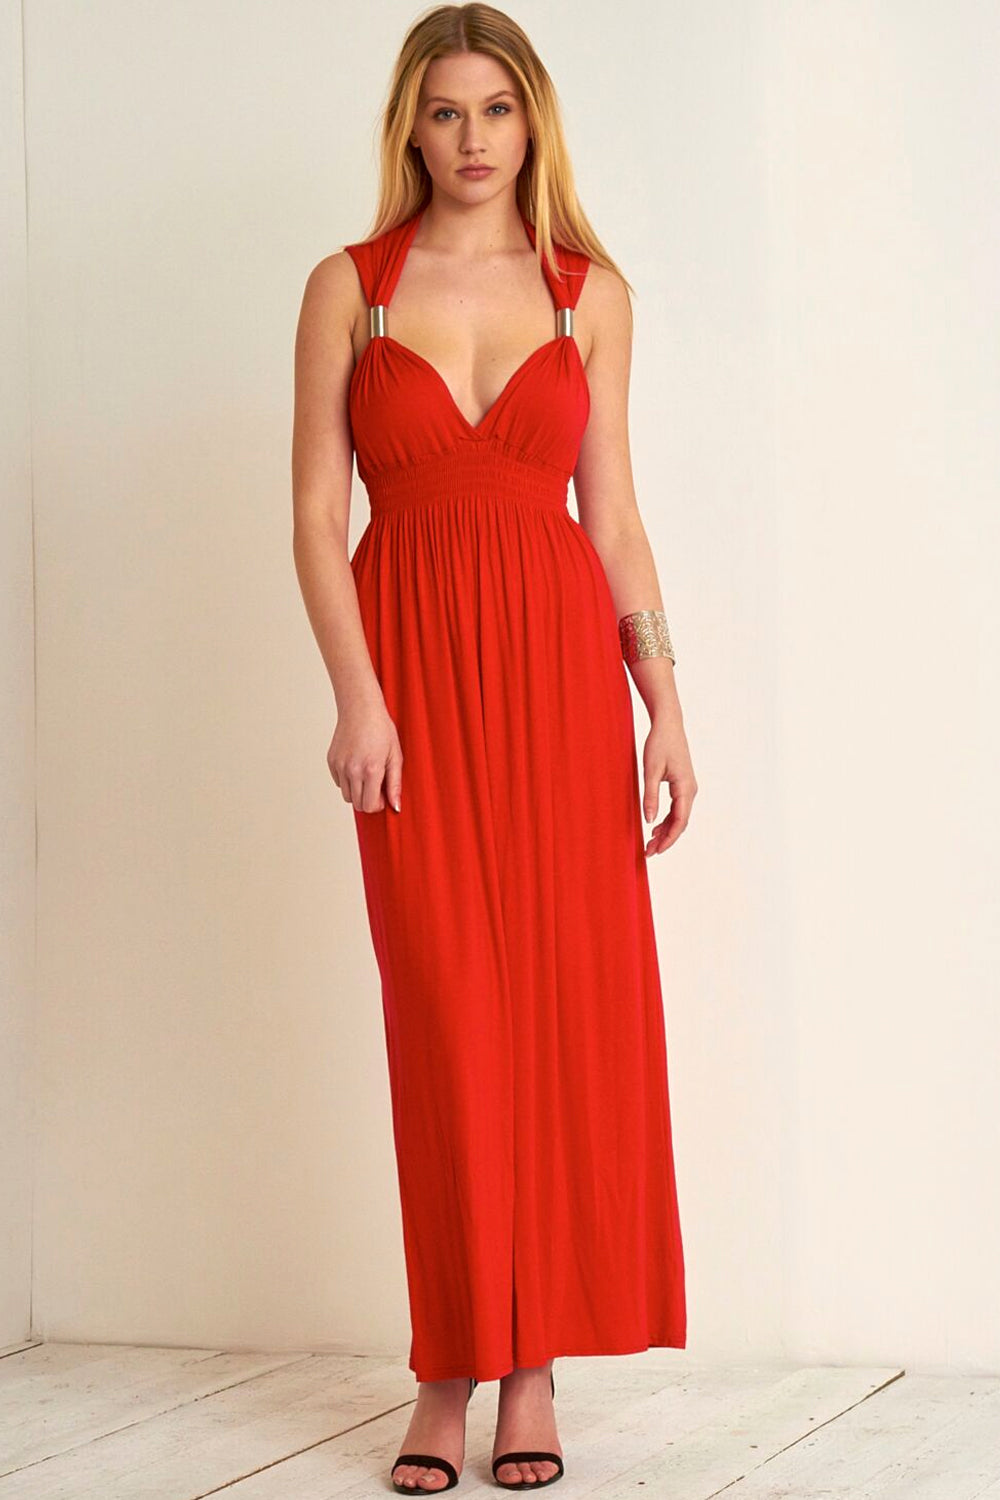 Chunky Strap Plunge Neck Red Maxi Dress - bejealous-com